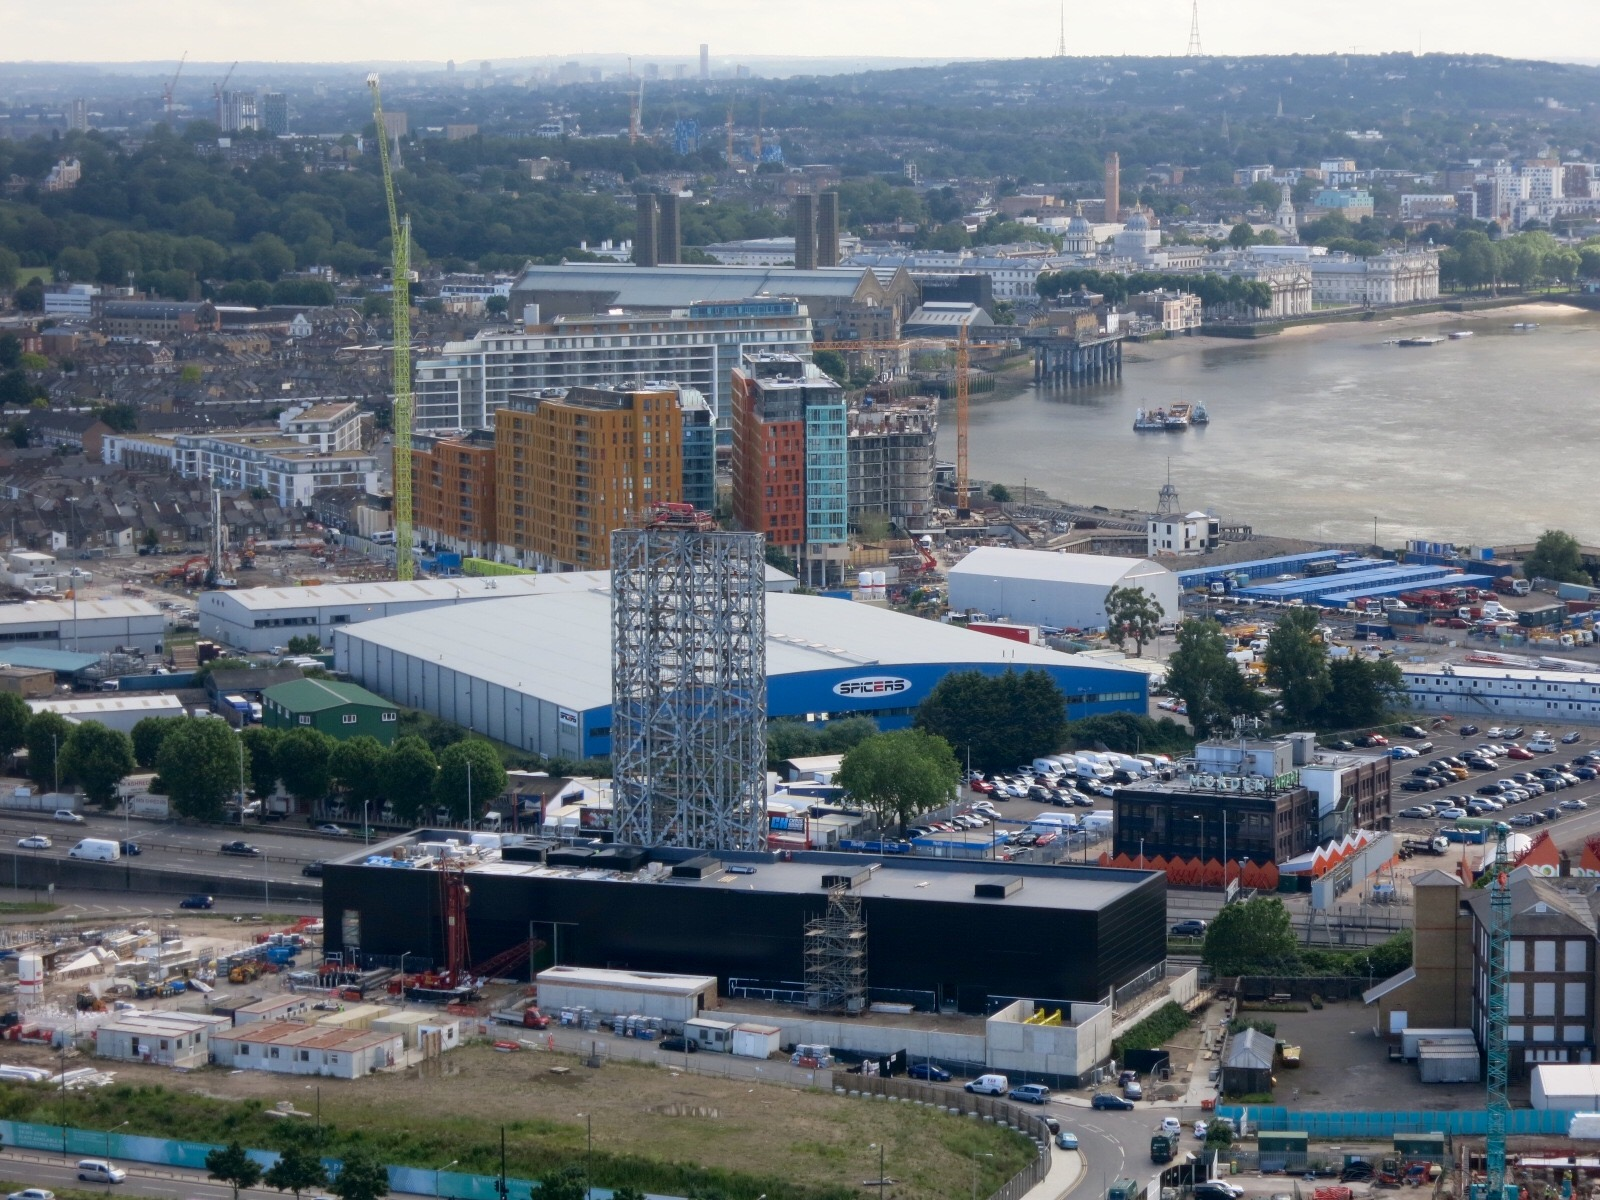 Construction progress on Greenwich Peninsula Low Carbon District Energy Centre and Enderby Wharf scheme